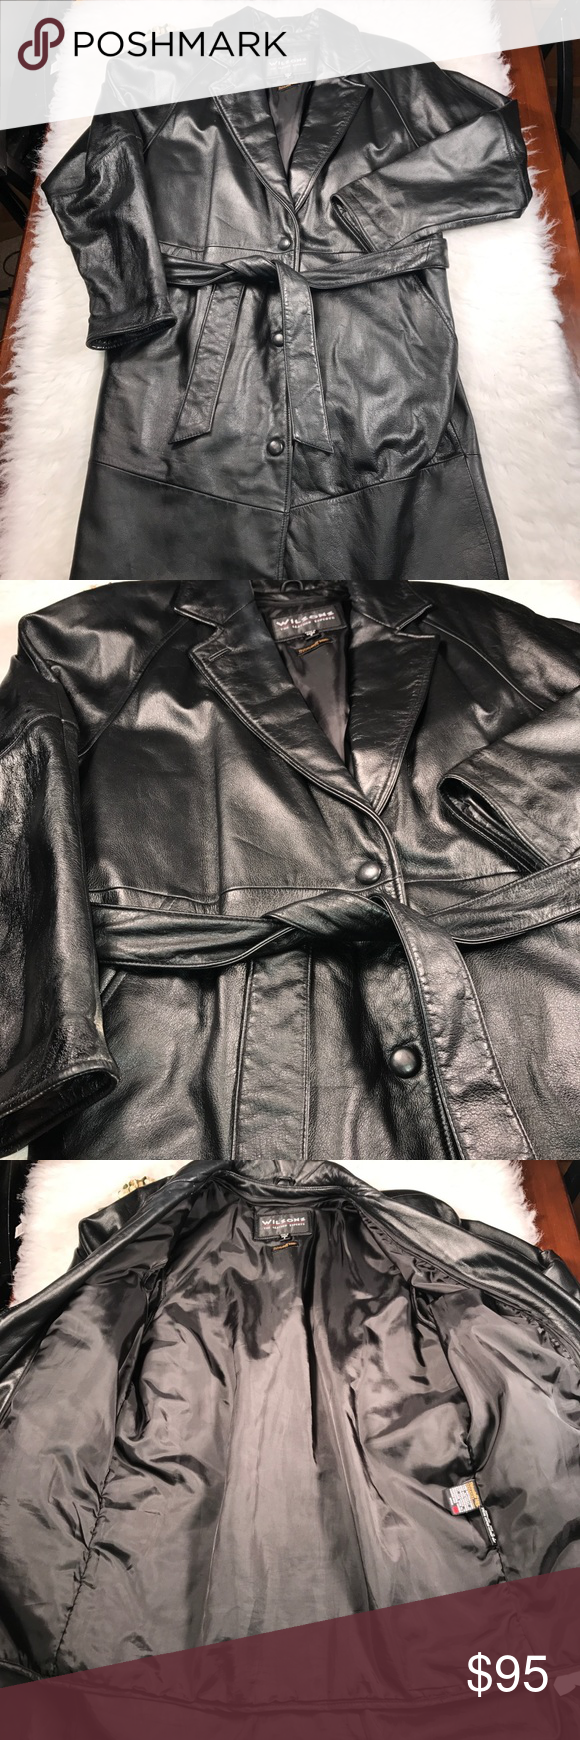 Men's Small Wilson's Black Leather trench coat Wilson's